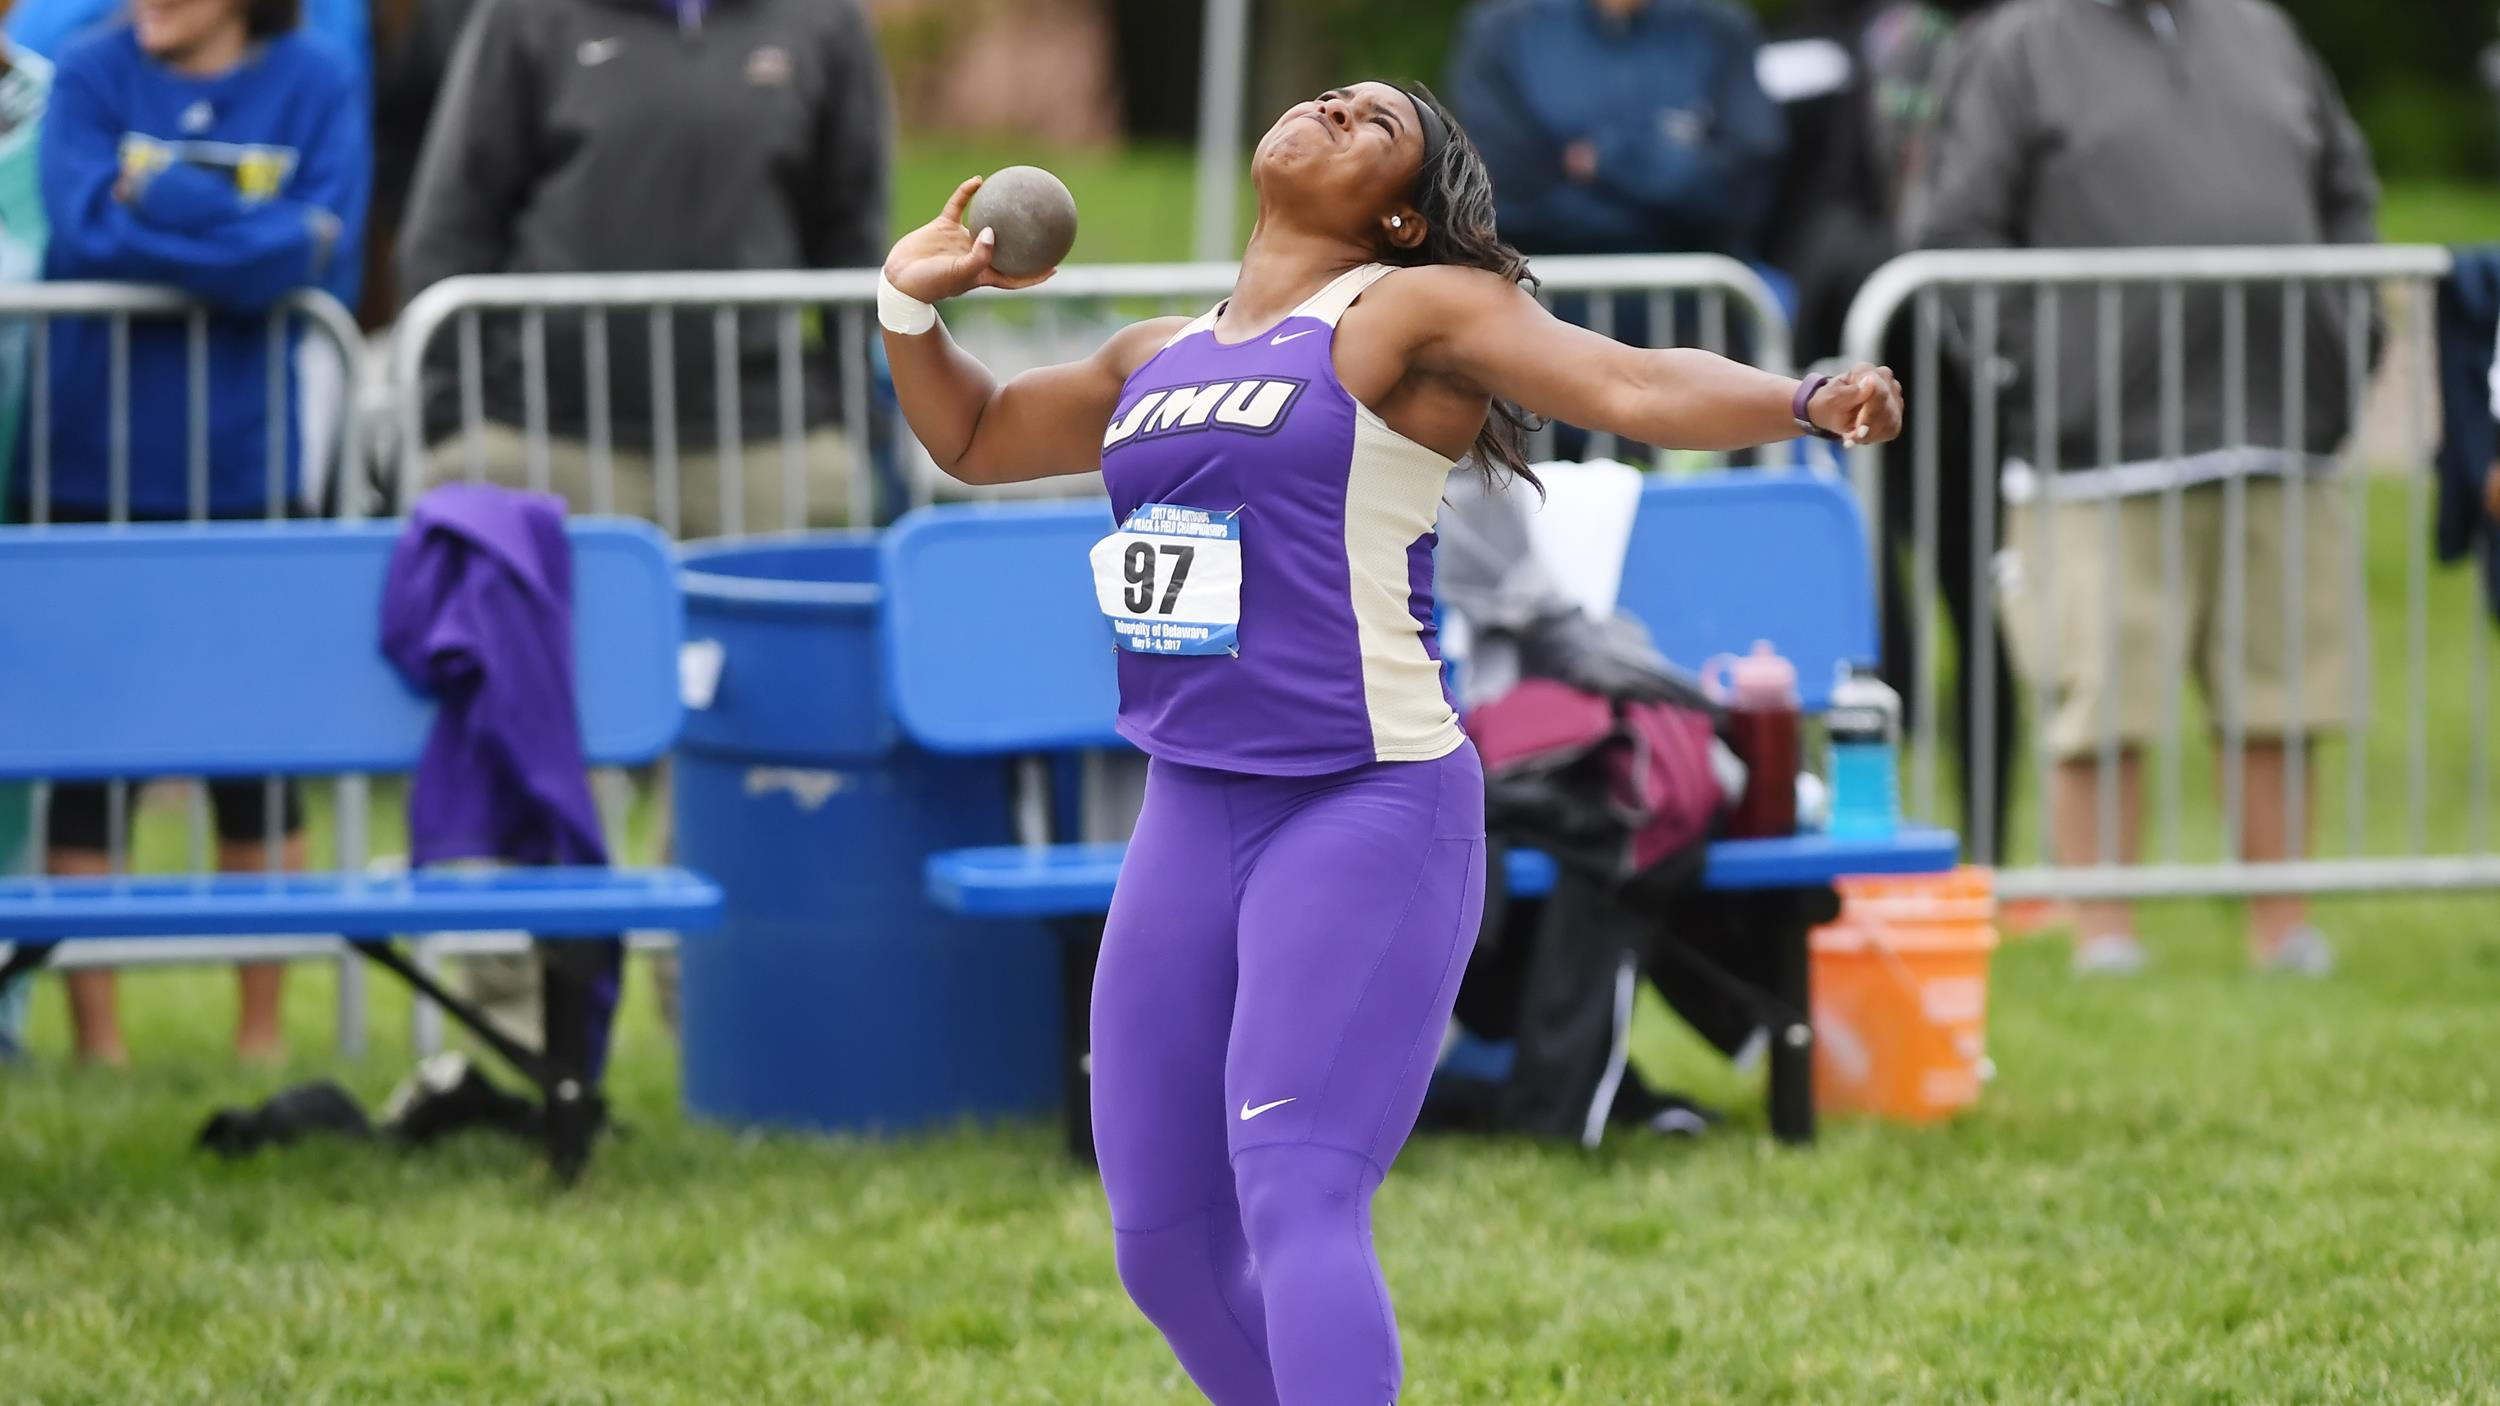 Track & Field: Dukes Complete Day One At VCU Ram Invite)